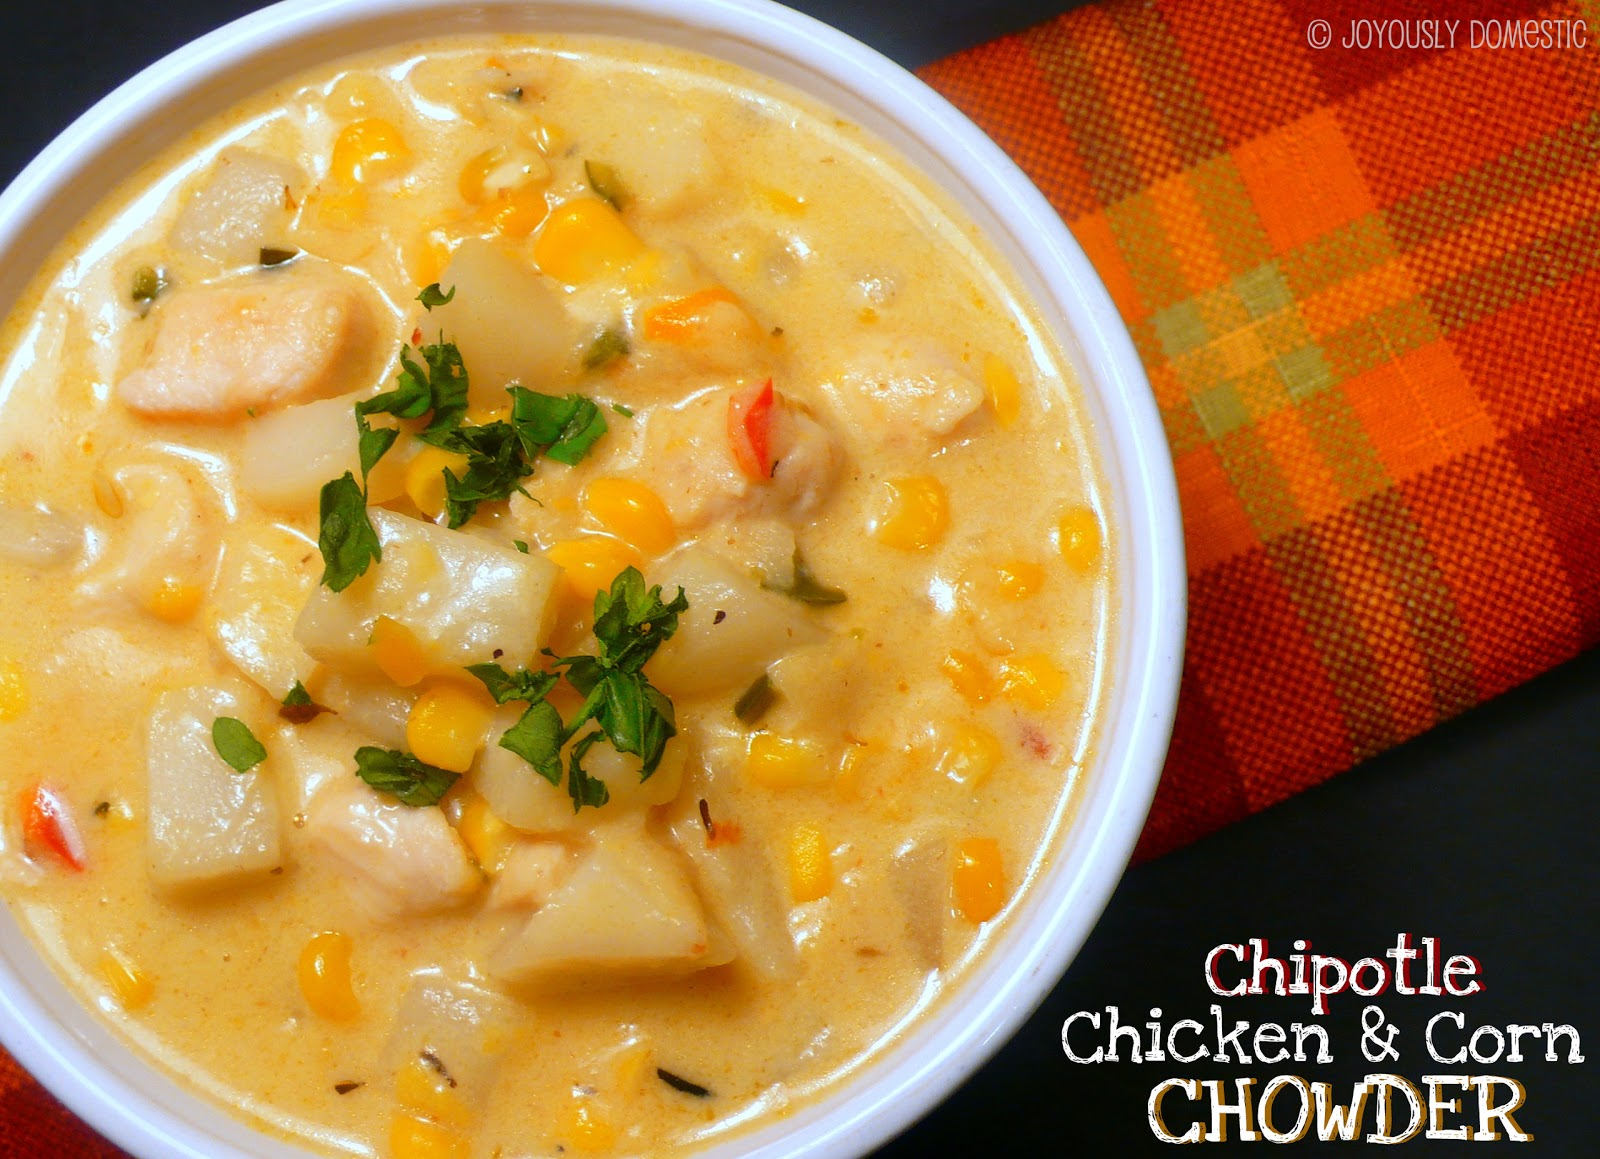 Joyously Domestic: Chipotle Chicken and Corn Chowder